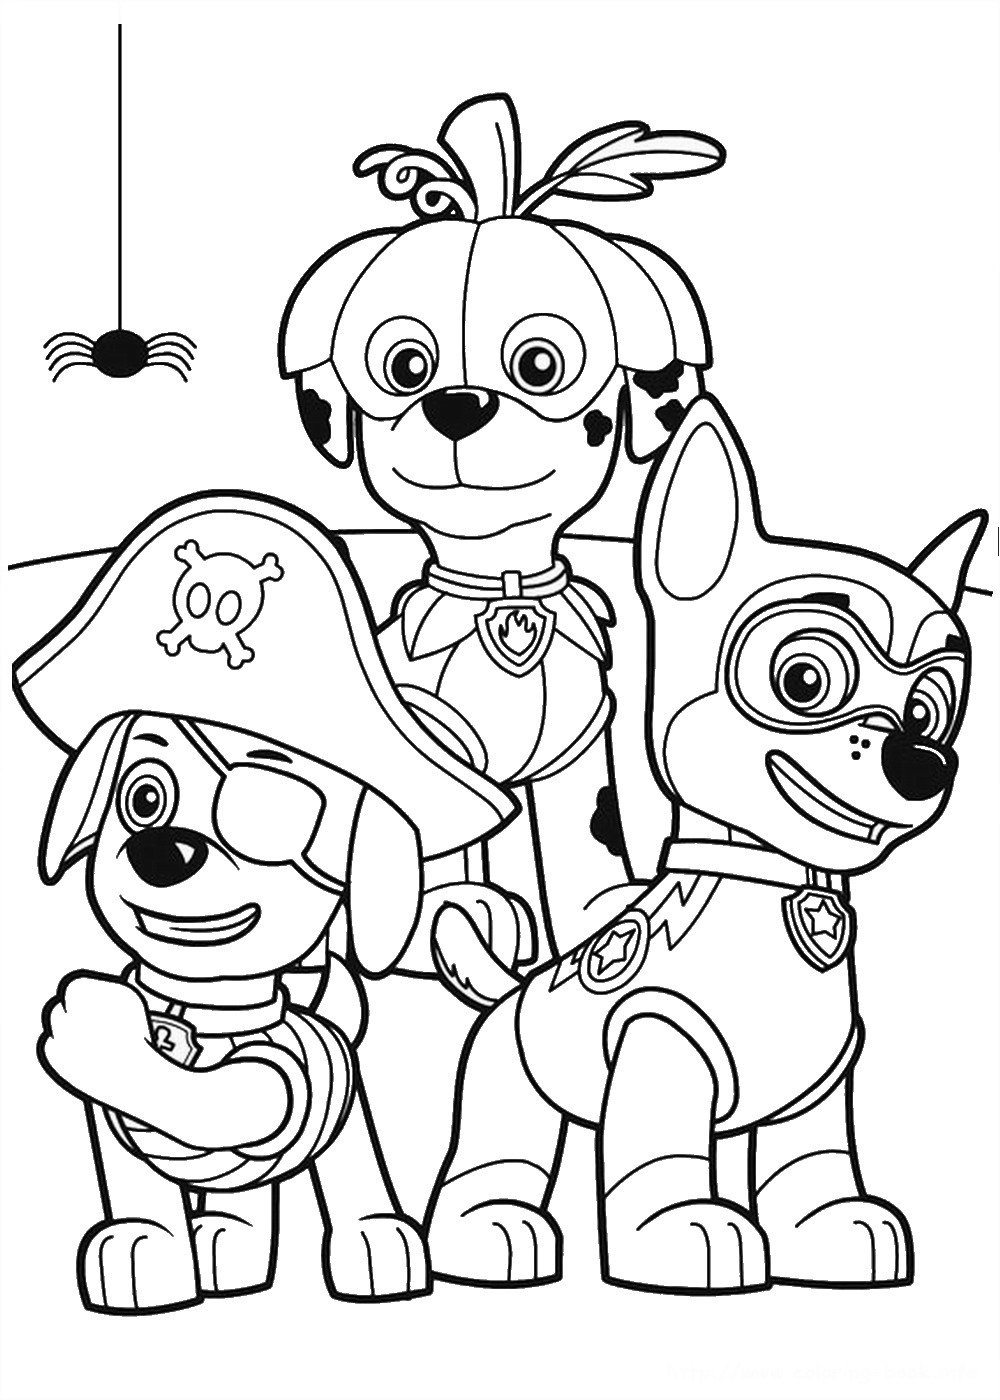 all coloring sheets all pokemon coloring pages download and print for free all sheets coloring